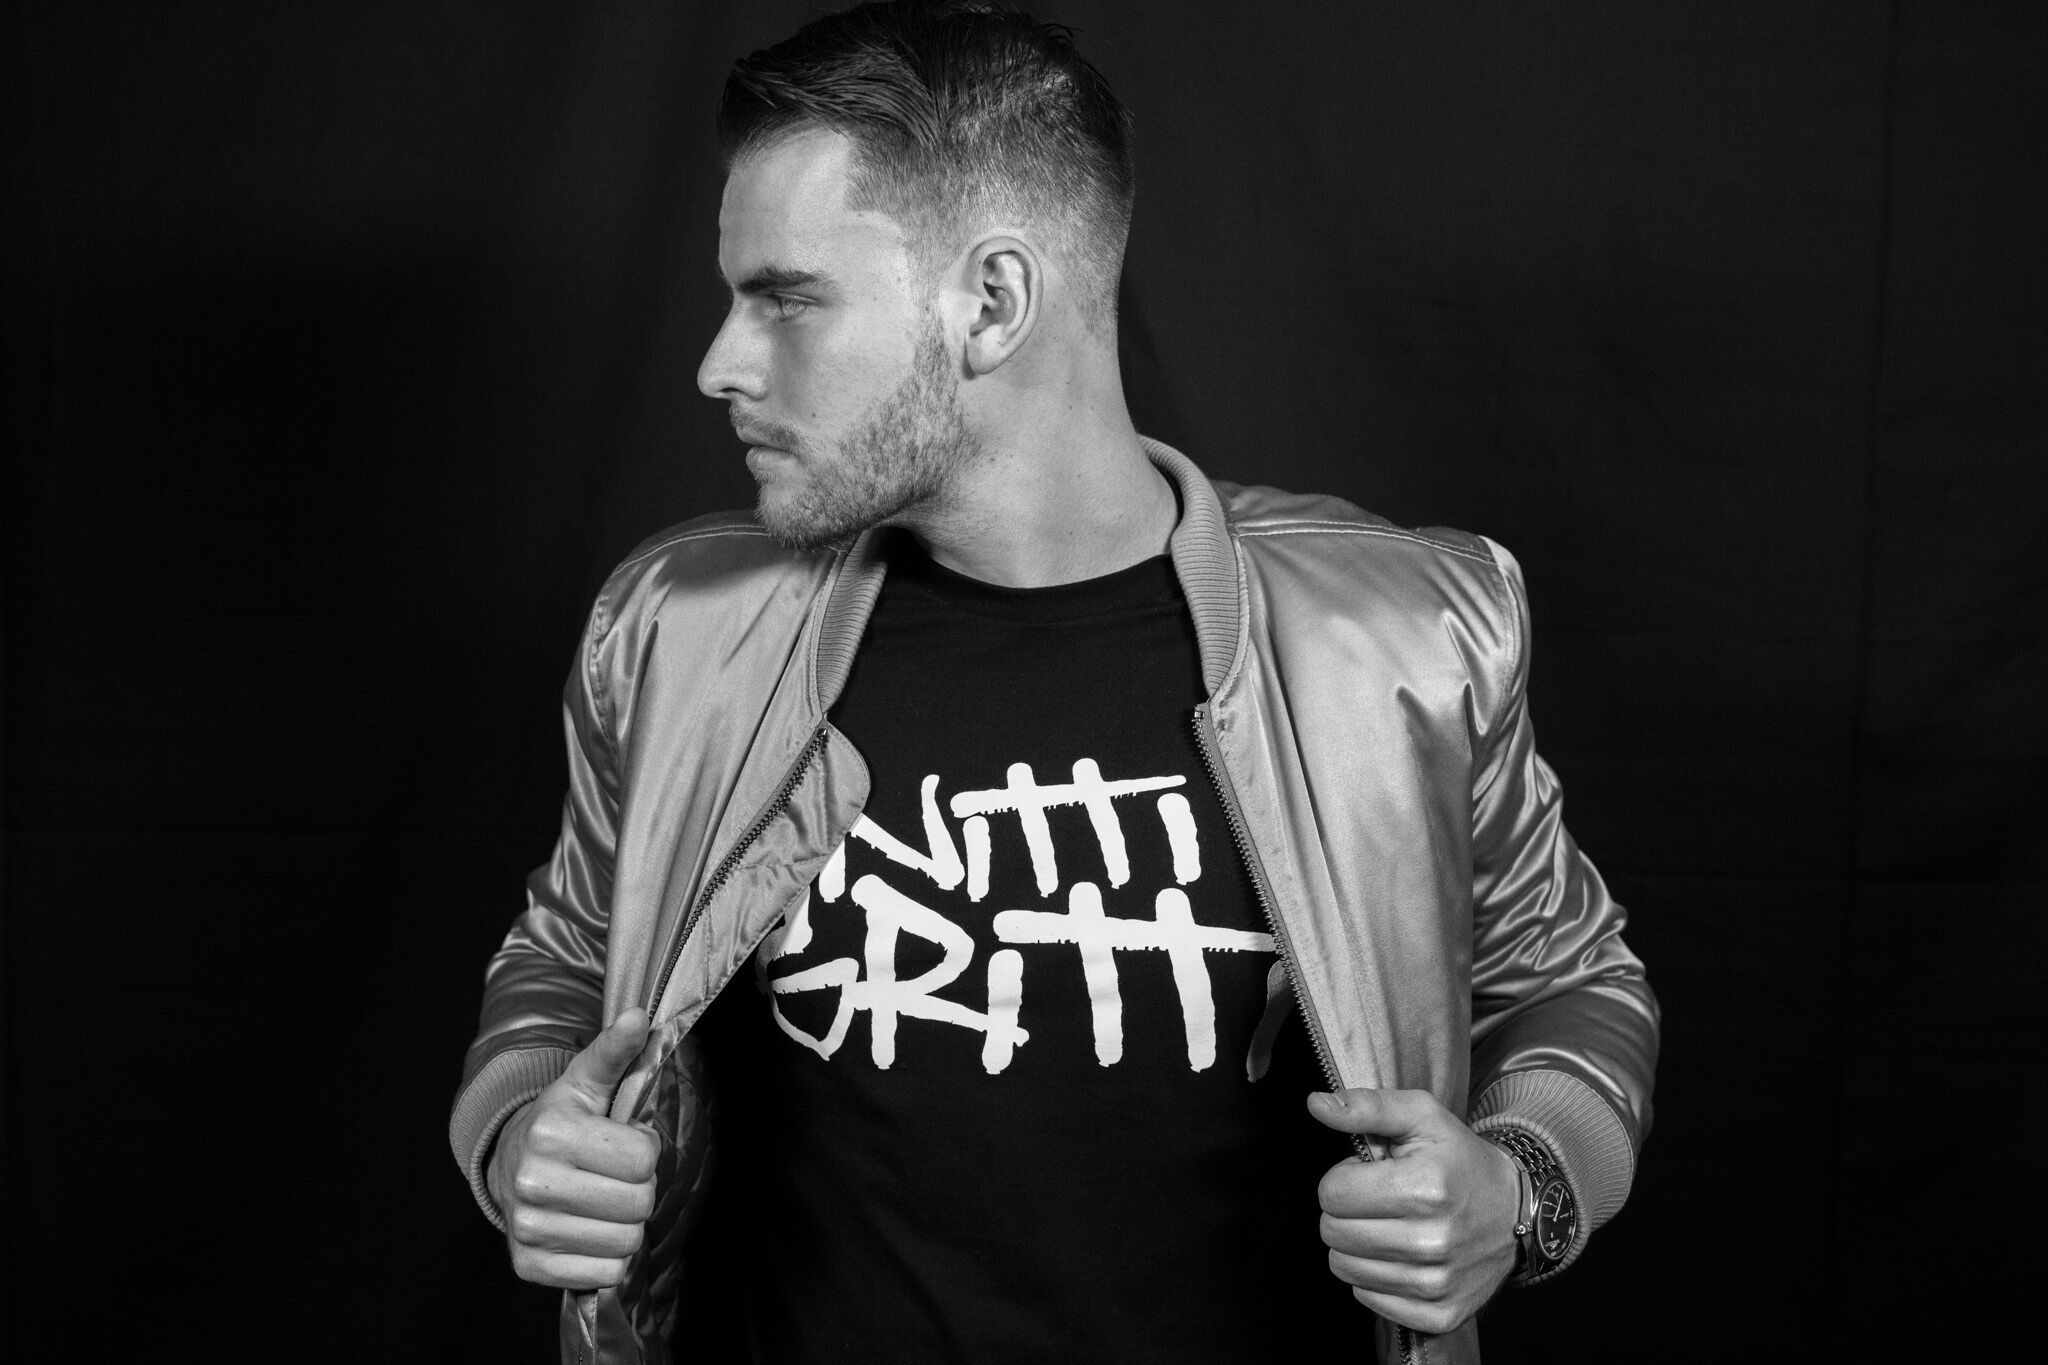 Nitti Gritti debuts on Mad Decent with heavy-hitting EP, 'Drive'Nitti Gritti Drive EP